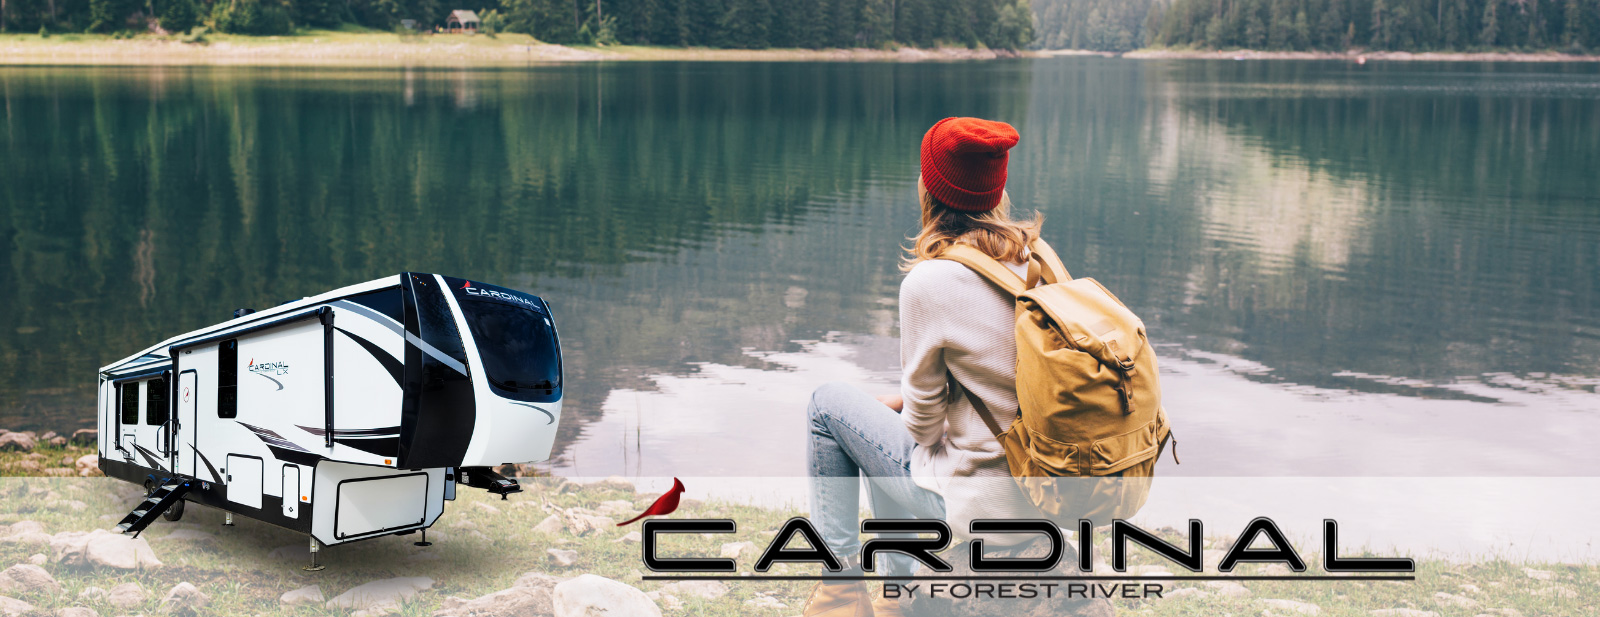 Cardinal Luxury | Forest River RV - Manufacturer of Travel Trailers